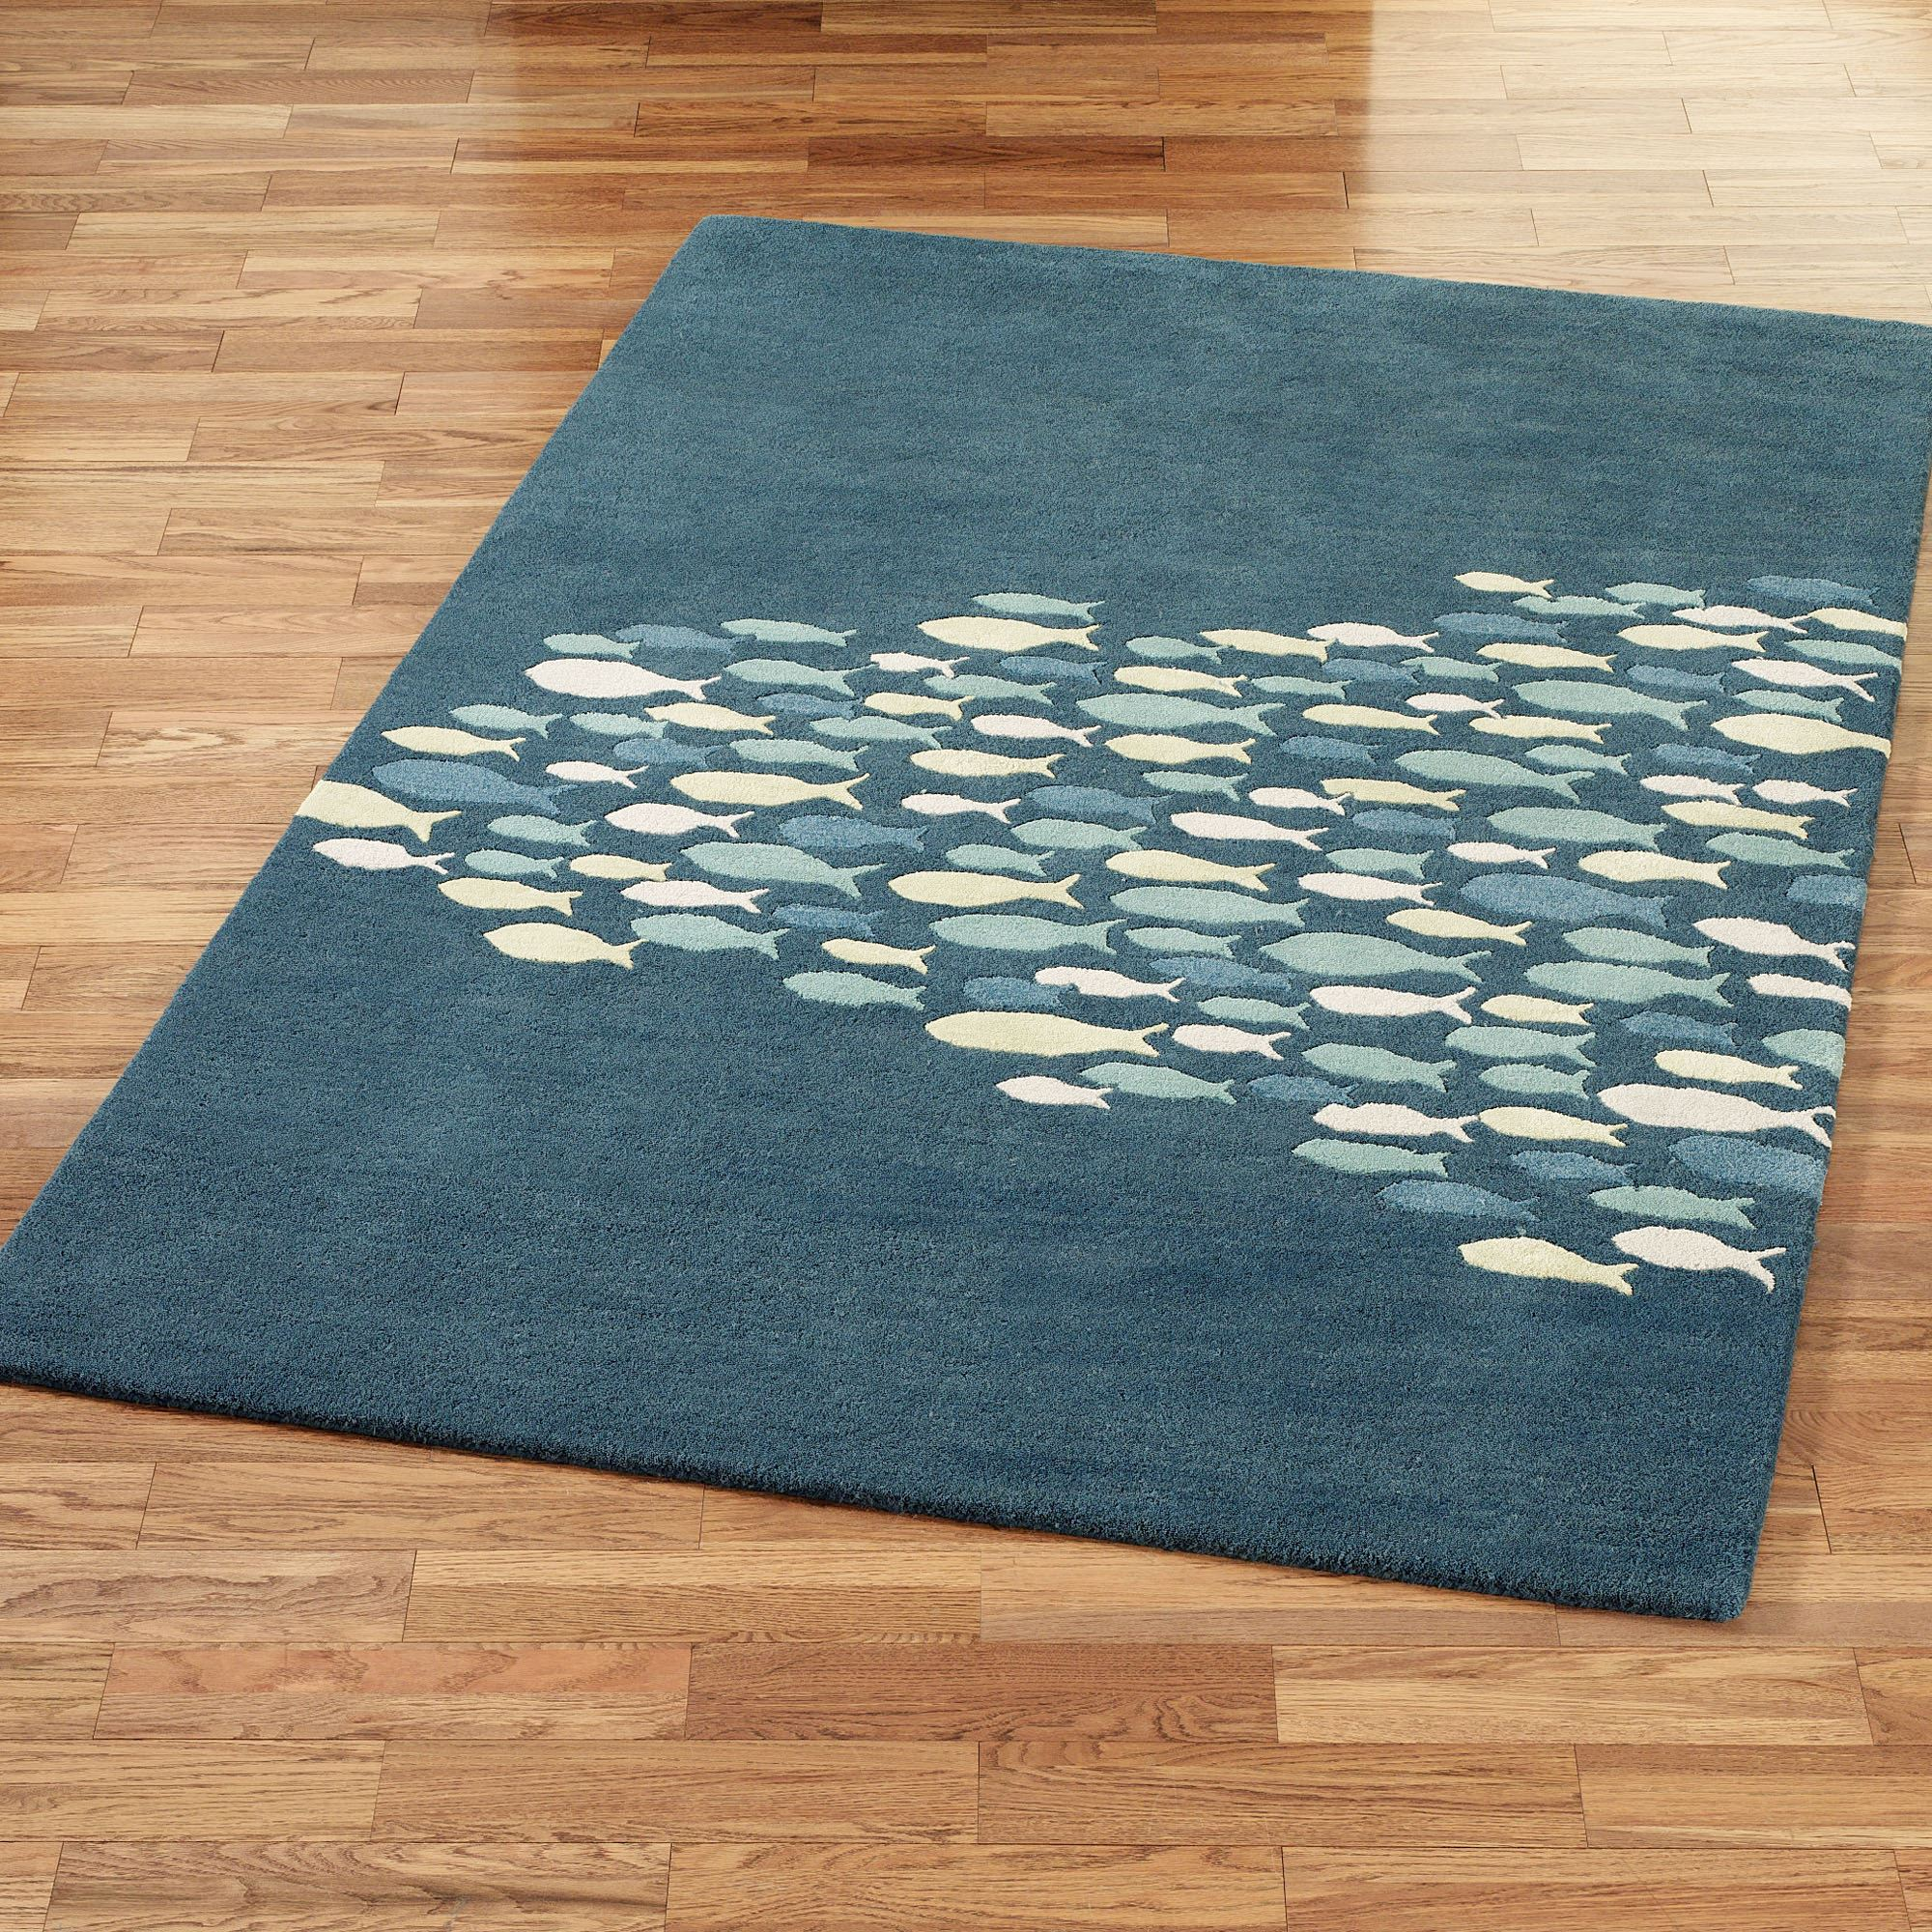 Freedom Furniture Rugs Schooled Fish Wool Area Rugs